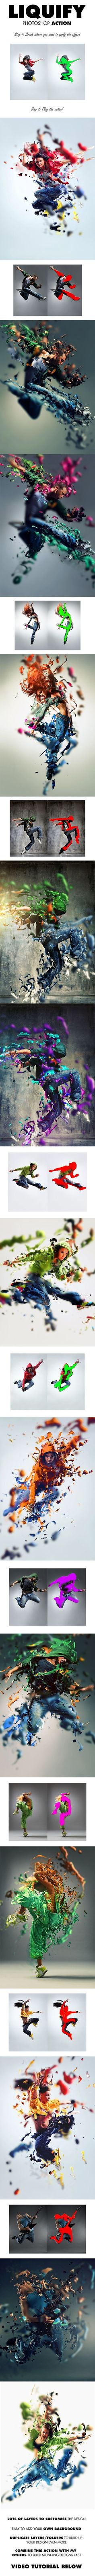 Liquify Photoshop Action - Photo Effects Actions: